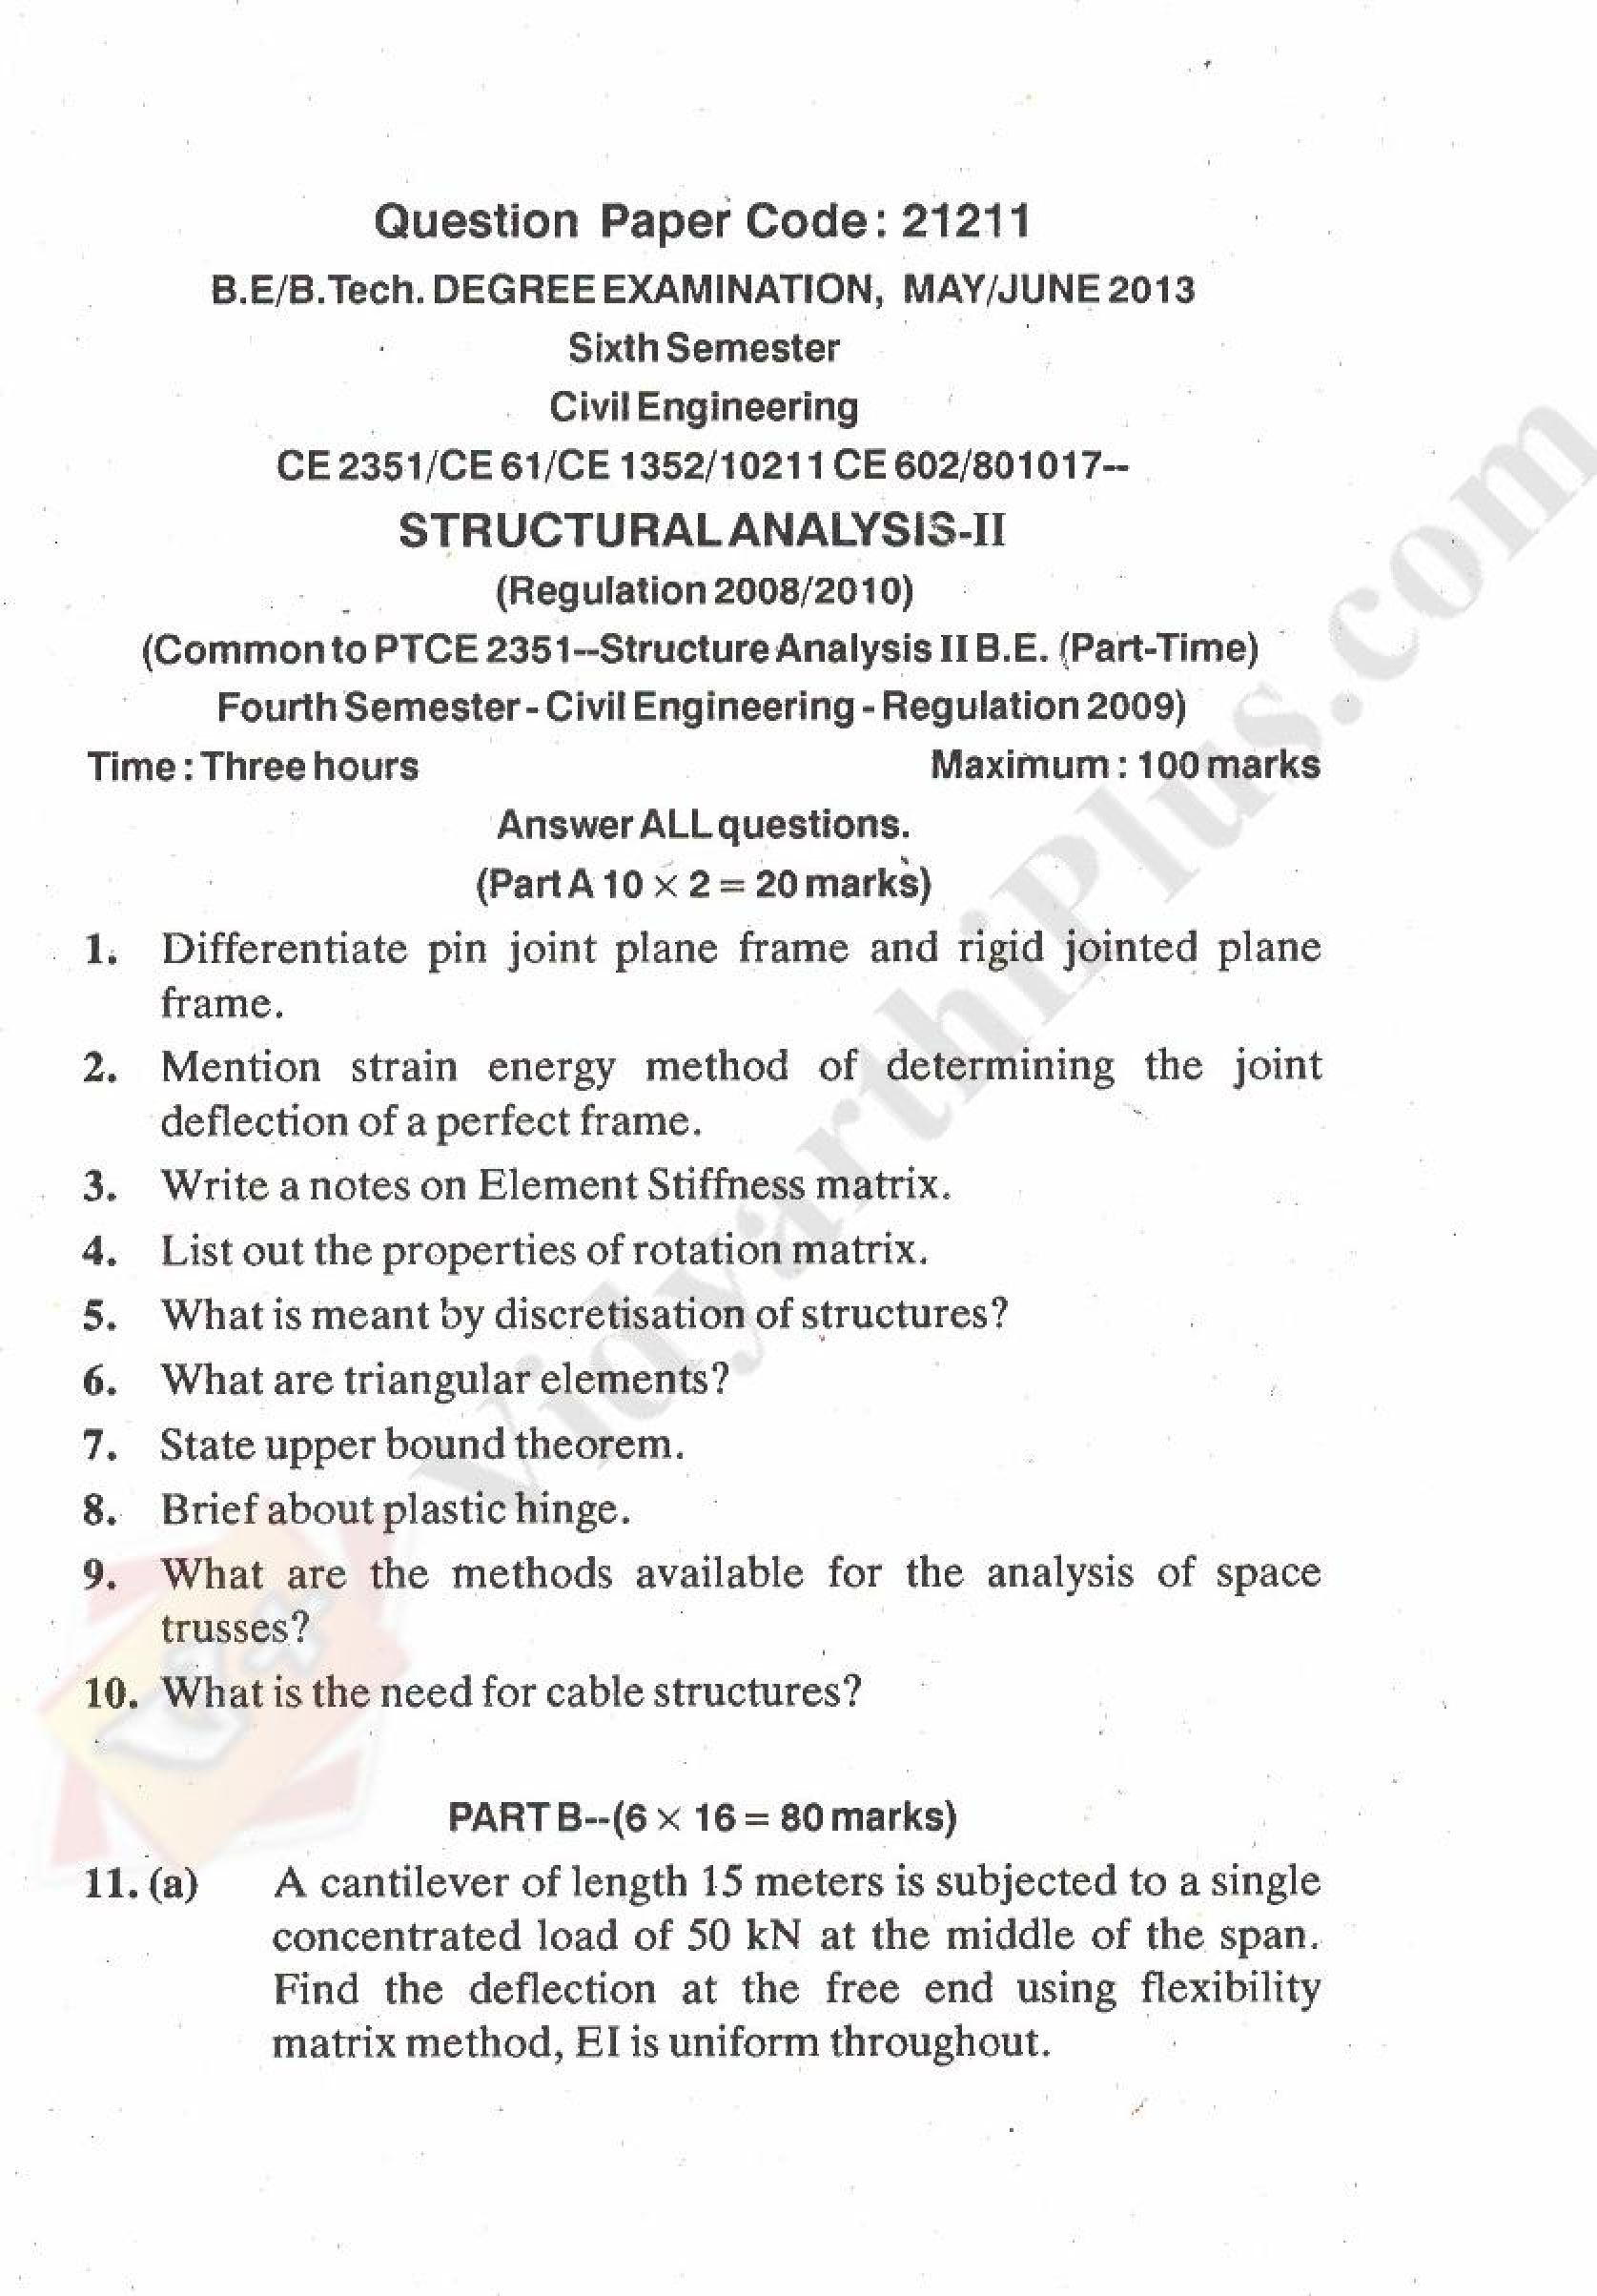 Structural Analysis - II Solved Question Papers - 2015 Edition